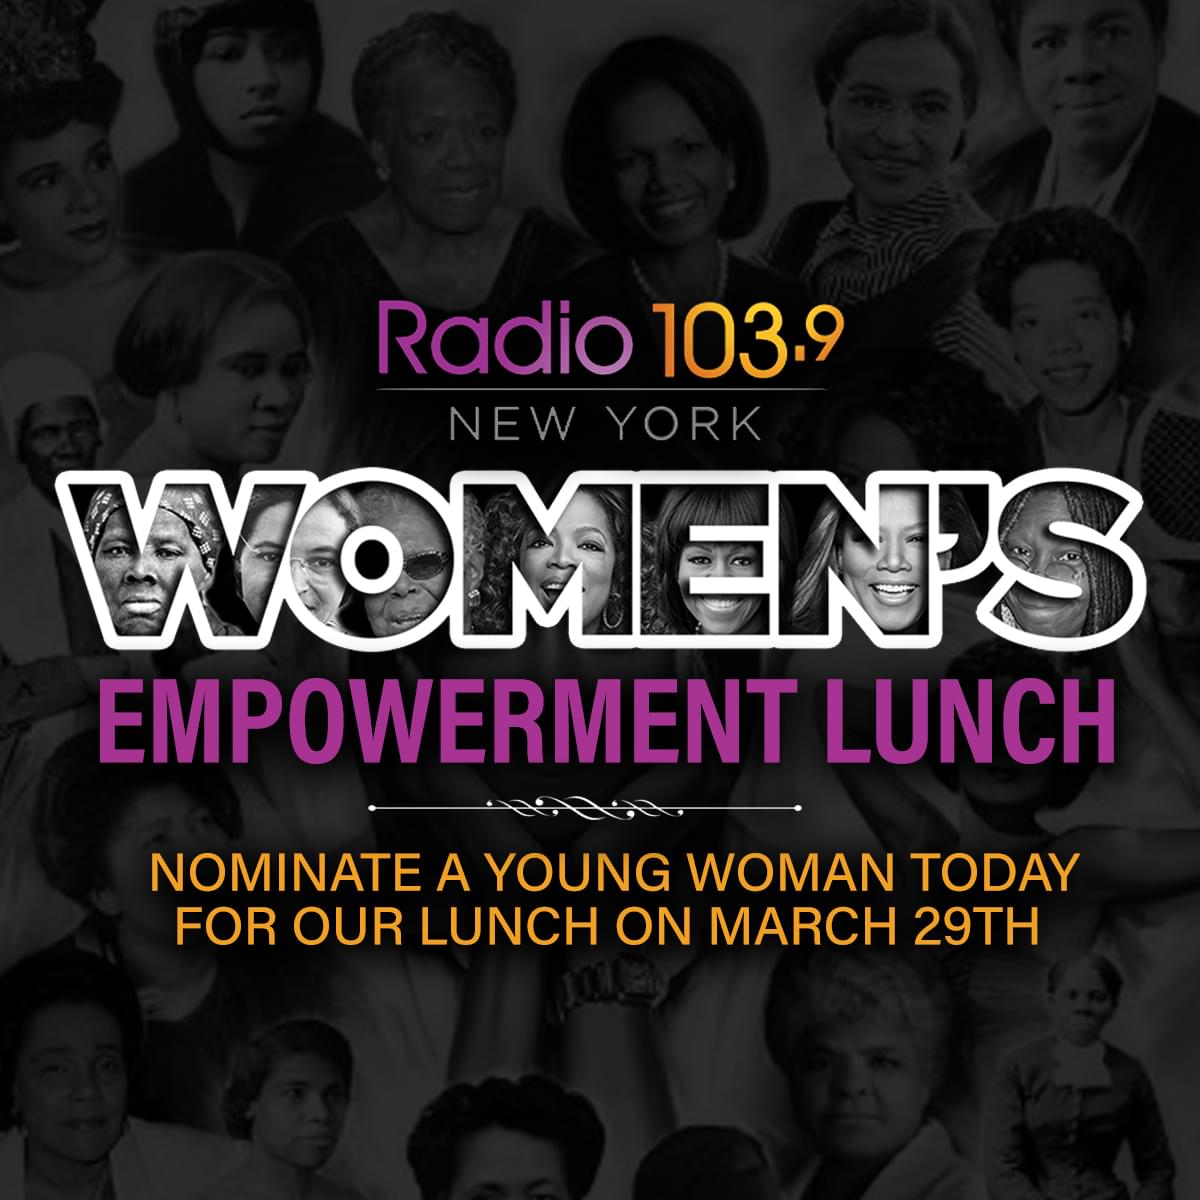 Submit Your Nomination for the Annual Women's Empowerment Lunch!